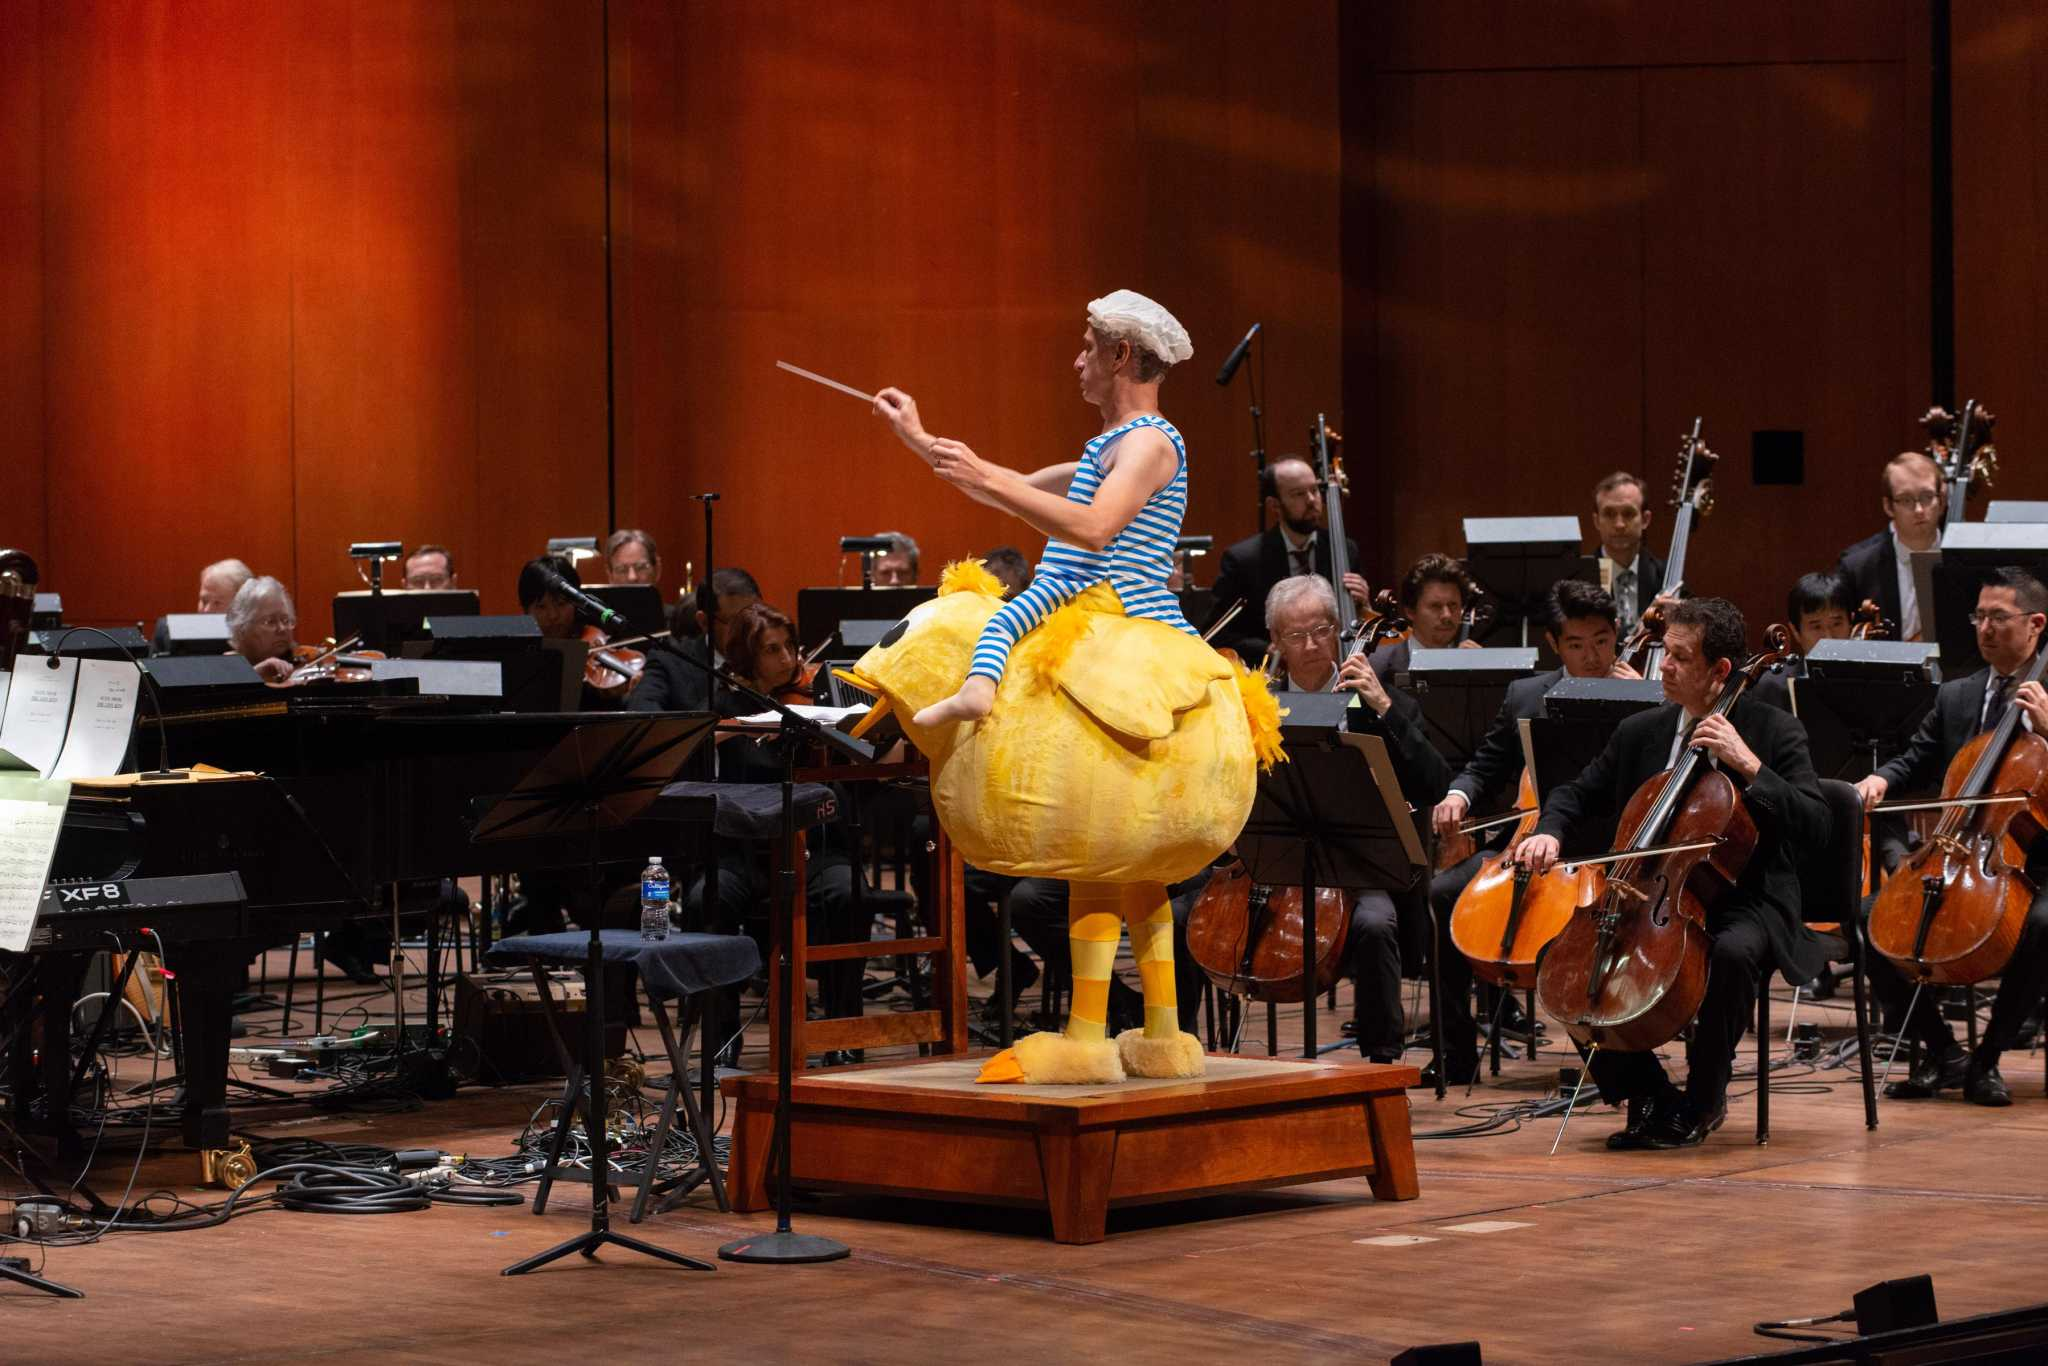 Kinder Hspva Students Join The Houston Symphony In Fairytale Concert For Families And Children Of All Ages Houston Chronicle